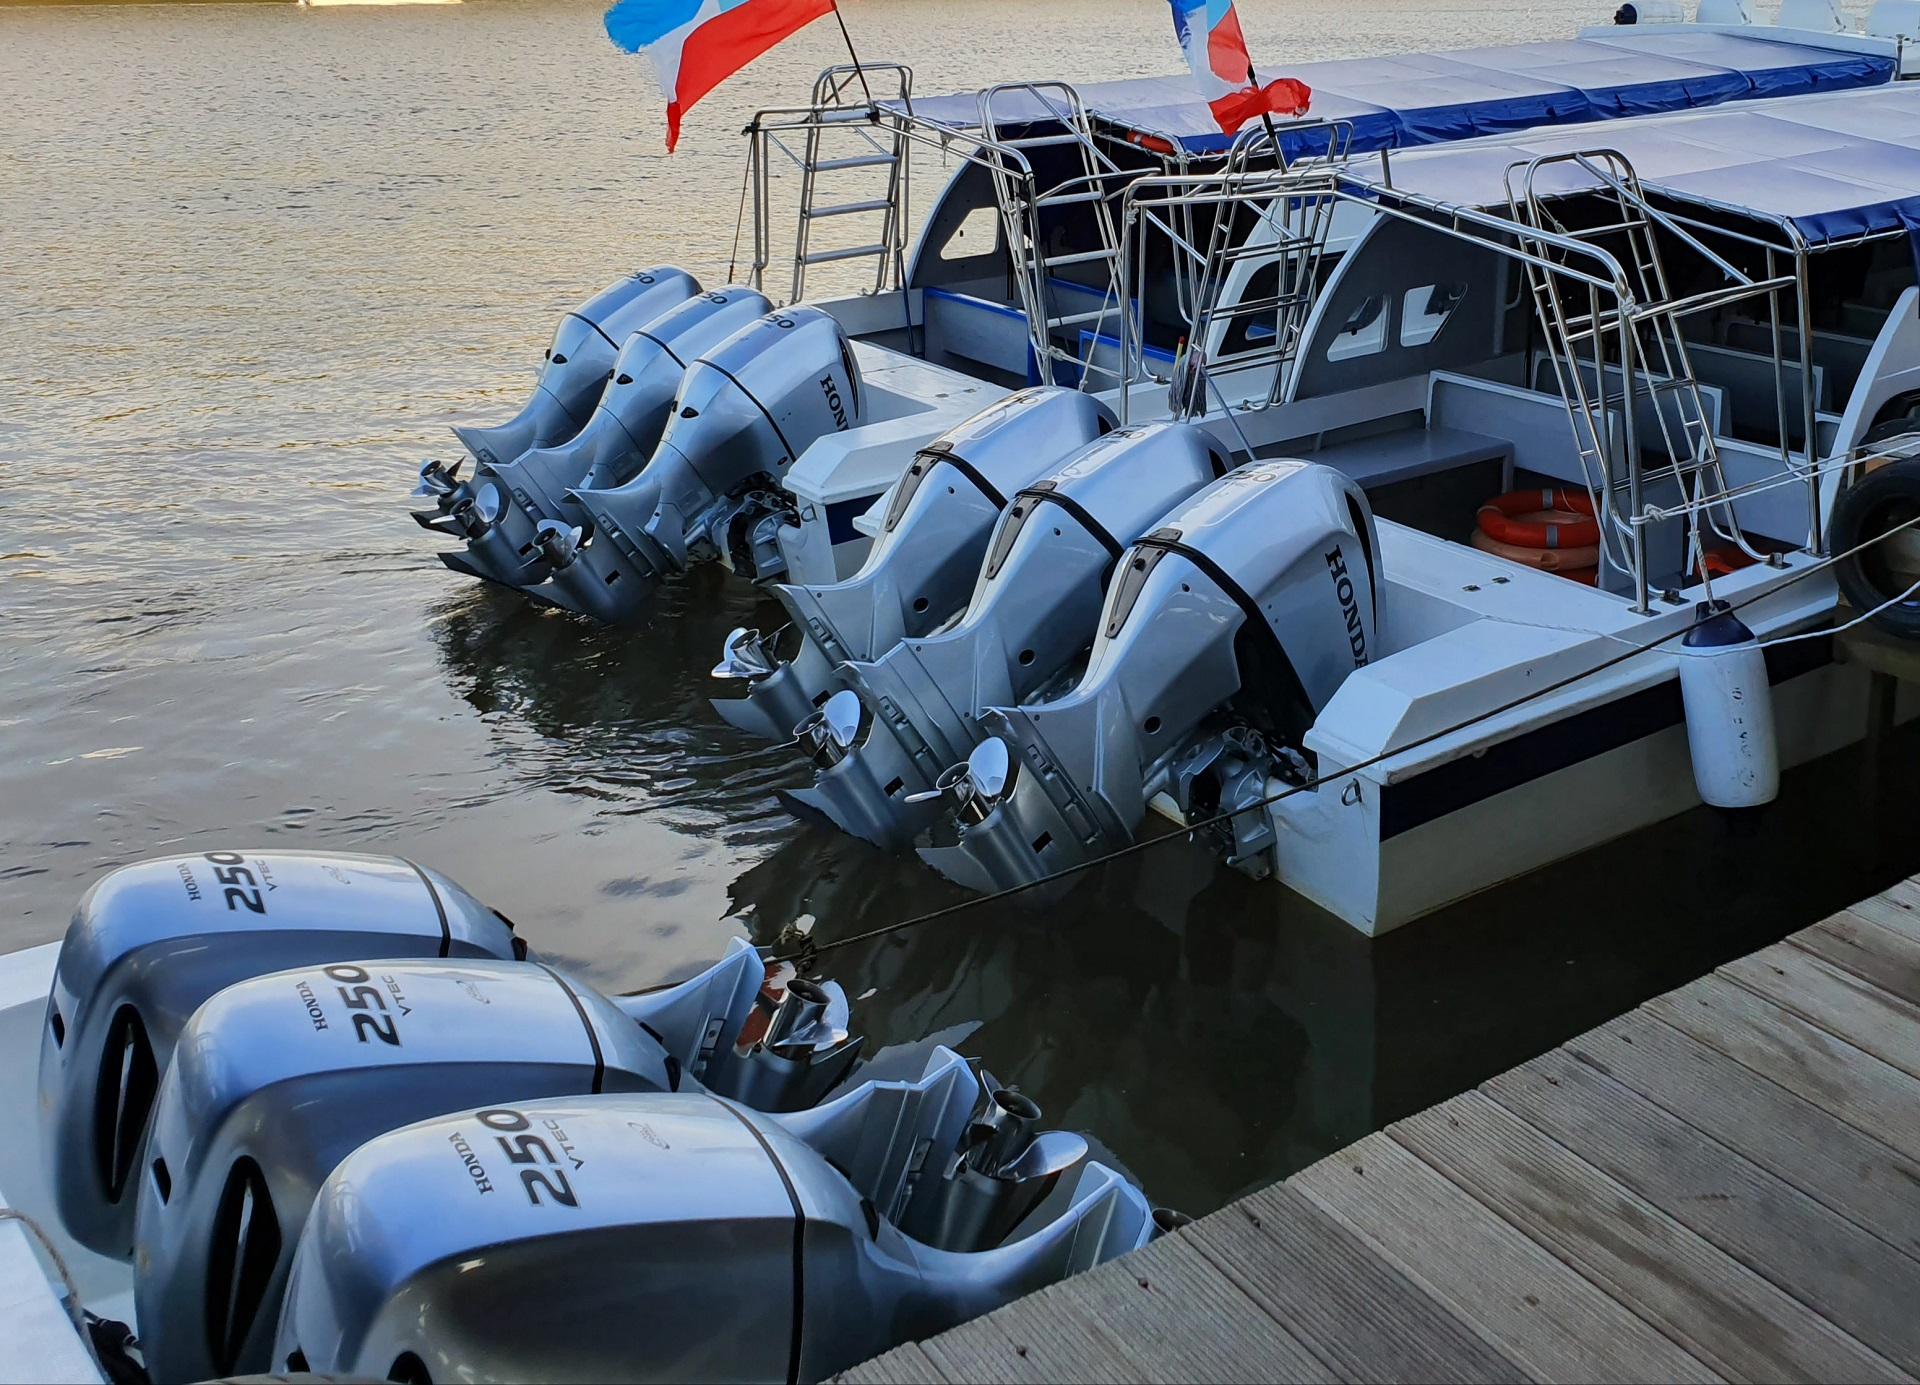 Victormax Honda Marine Engines